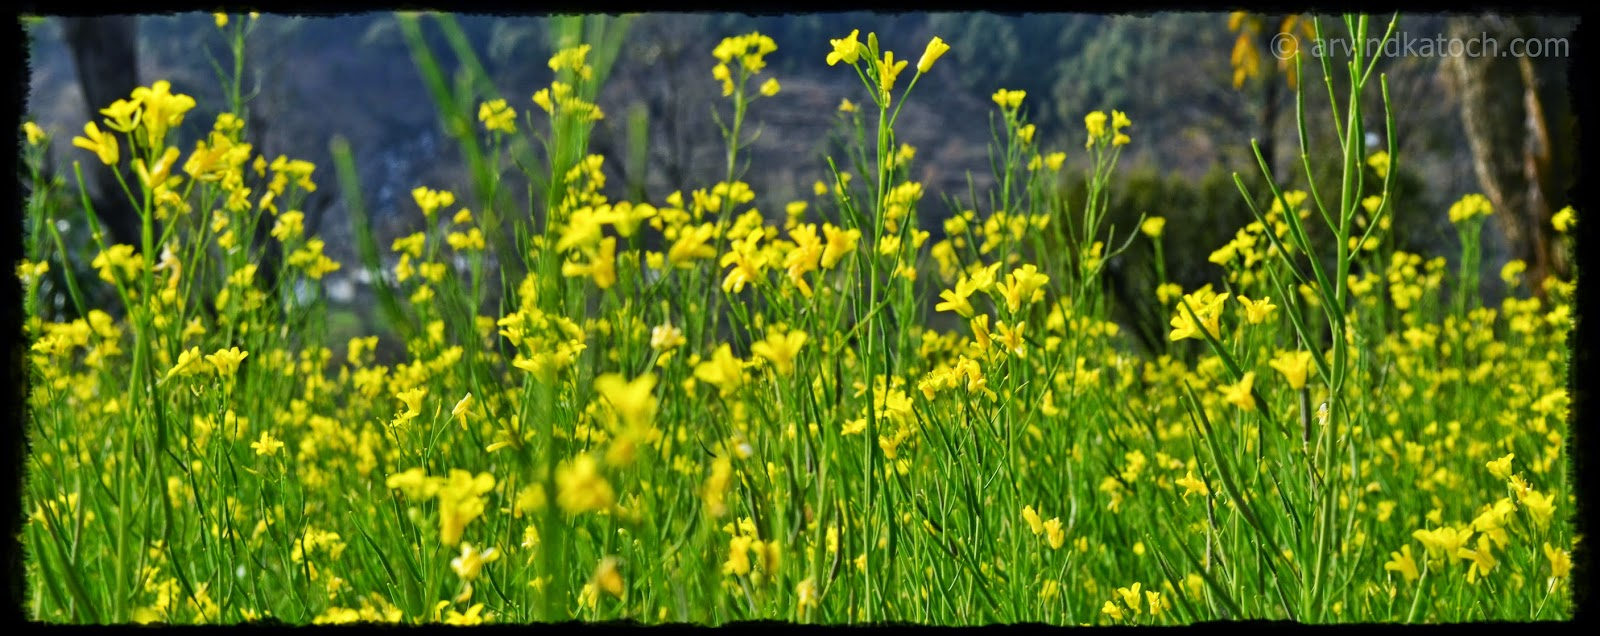 Mustard, Mustard Flowers, Yellow Flowers